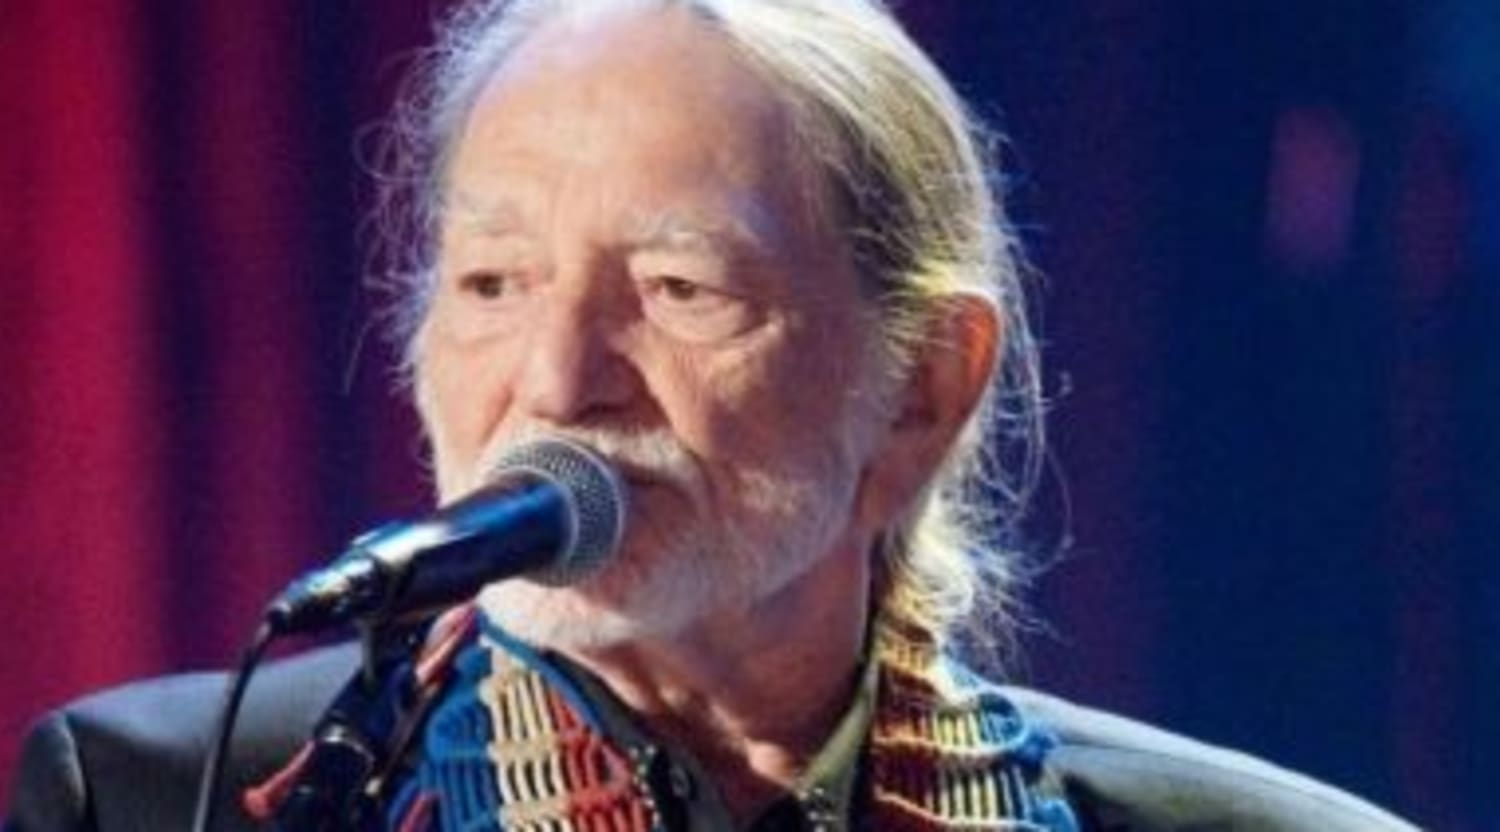 Willie Nelson Tickets - Willie Nelson Tour Dates on StubHub!